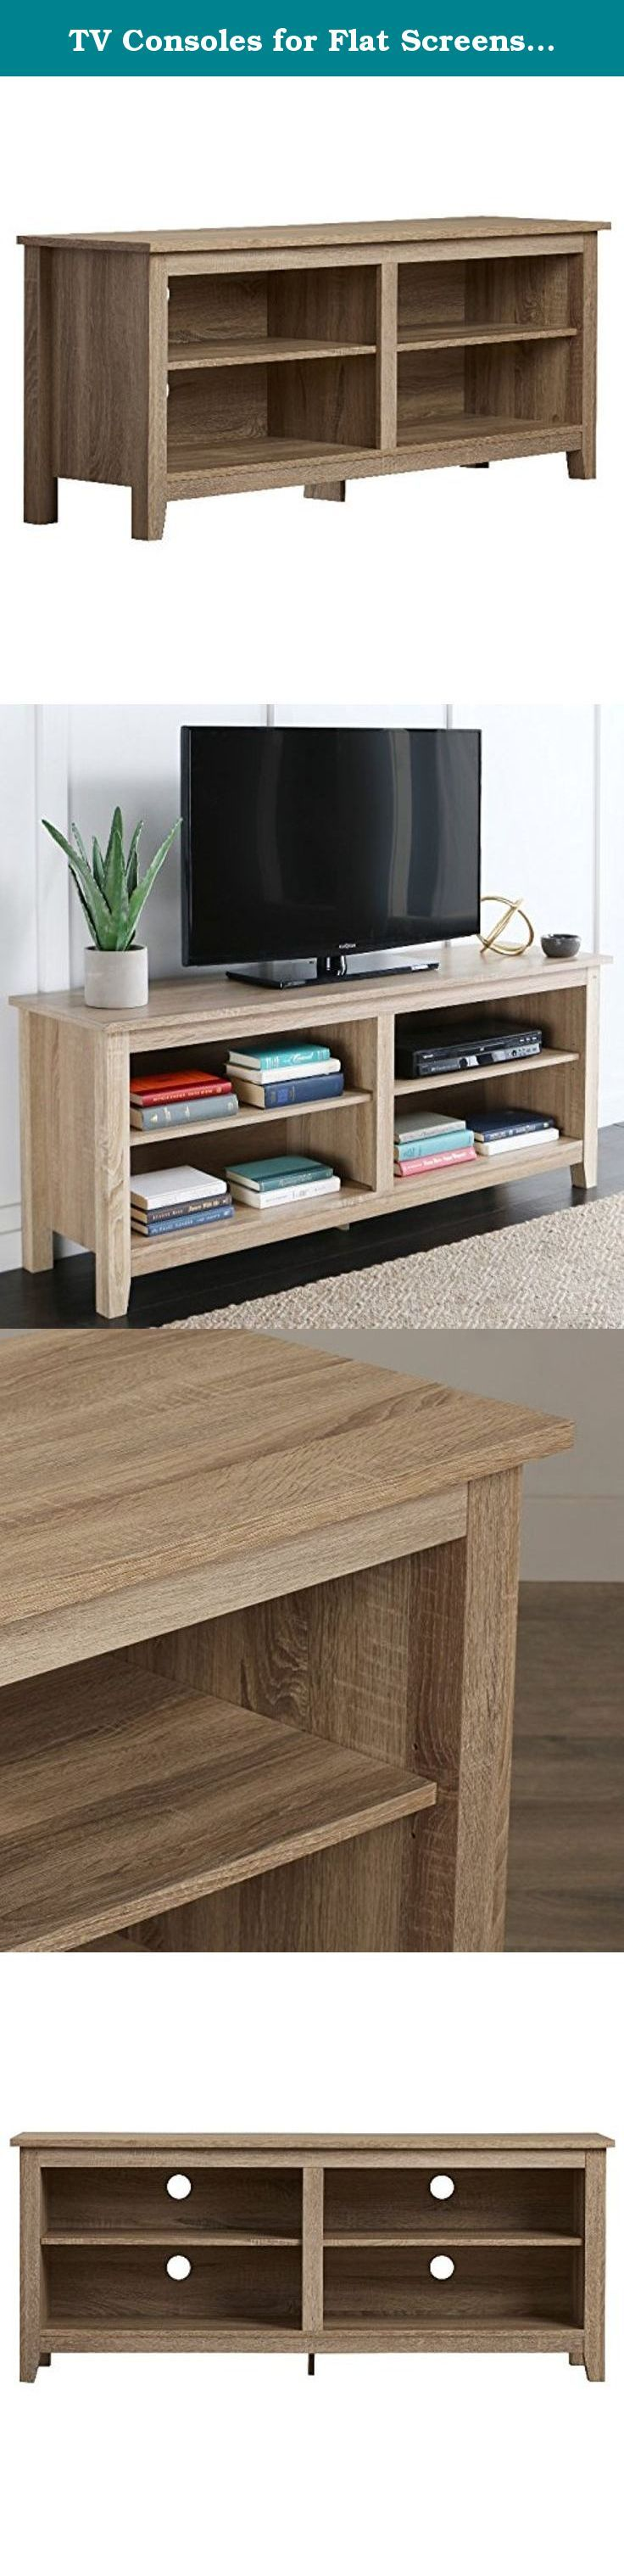 TV Consoles for Flat Screens 60 Inch Entertainment Center - Media Stand Furniture 4 Storage Shelves is Best for Flat Screen Televisions 46, 50, 55, 60 in Natural Wood Bundle w Anti-slip Accessory Pad. The TV console for flat screens 60 inch is perfect for accommodating home televisions from 46 inches up to 55 and 60, and all the media that goes with it! Complete with 4 large storage compartments for your AV components and much more! TV console furniture comes in a natural finish for a…